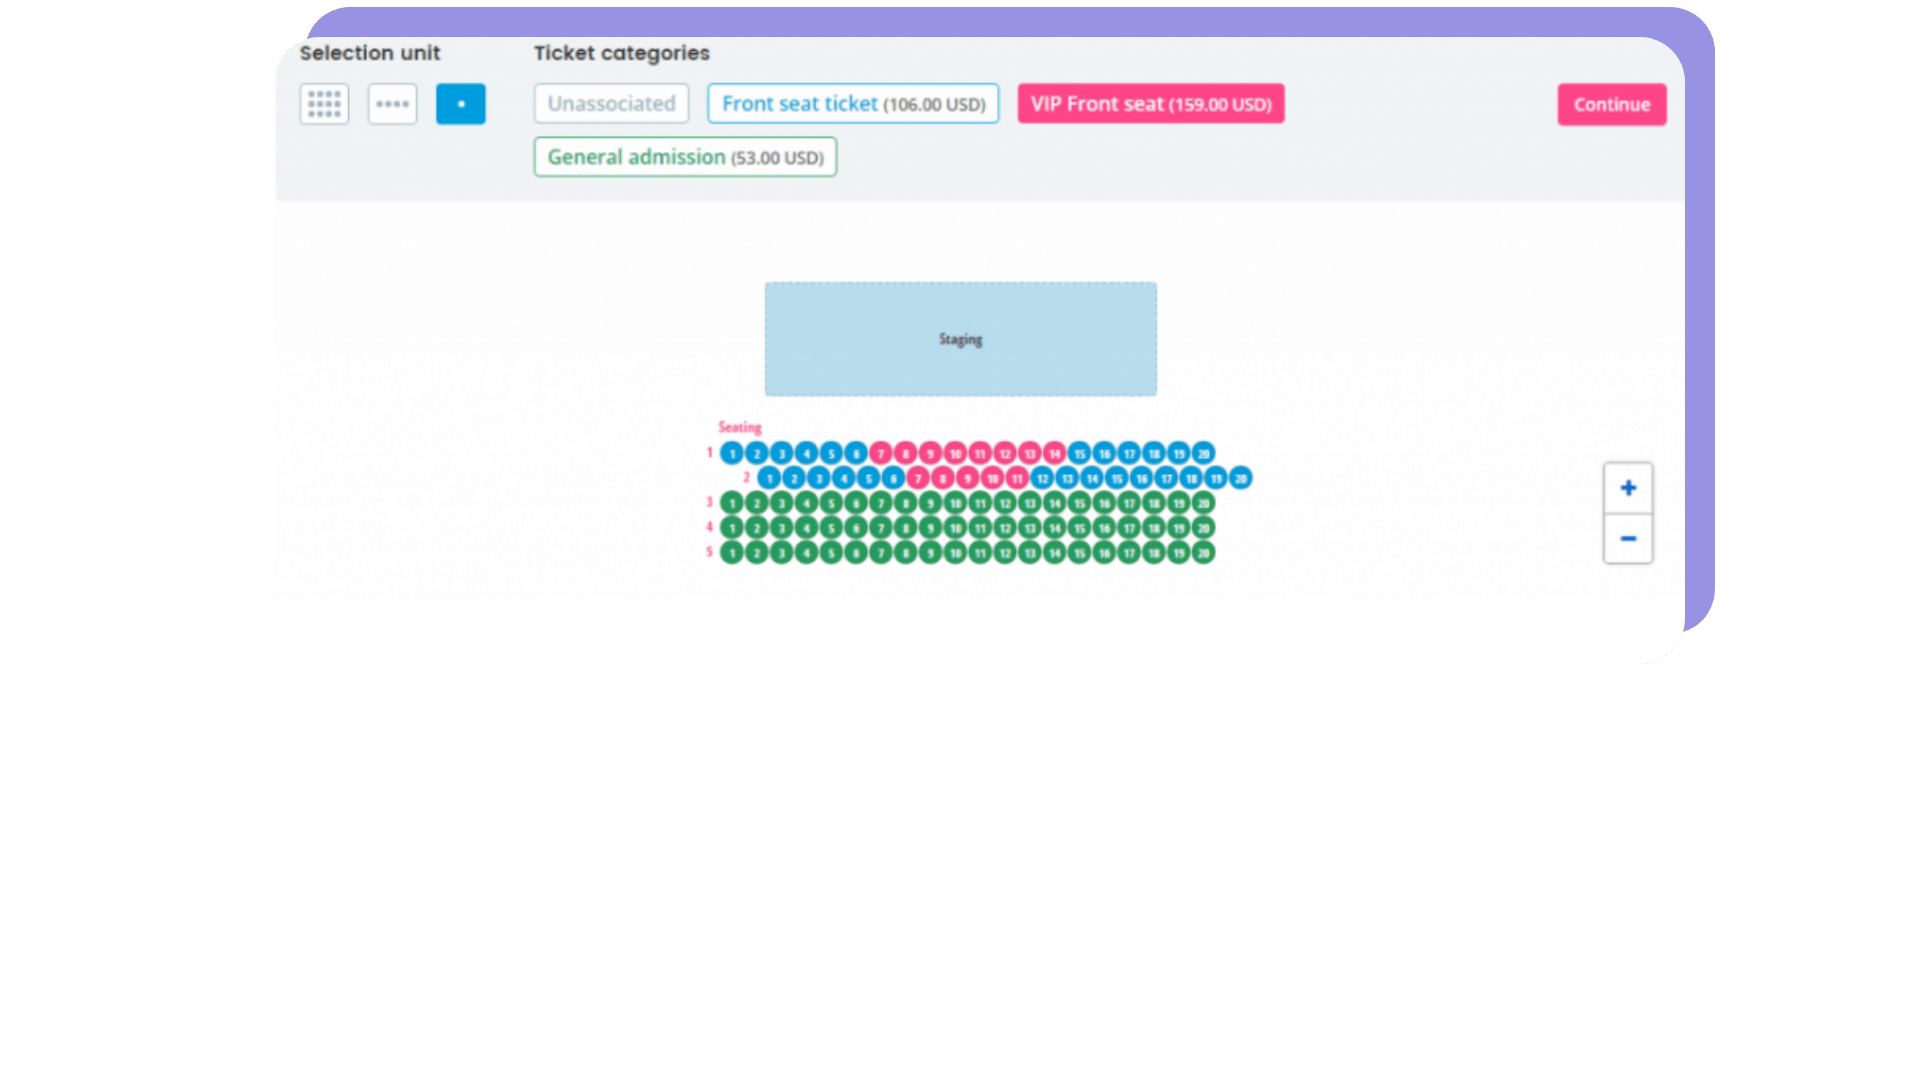 print screen with the venue seating plan from the Oveit dashboard